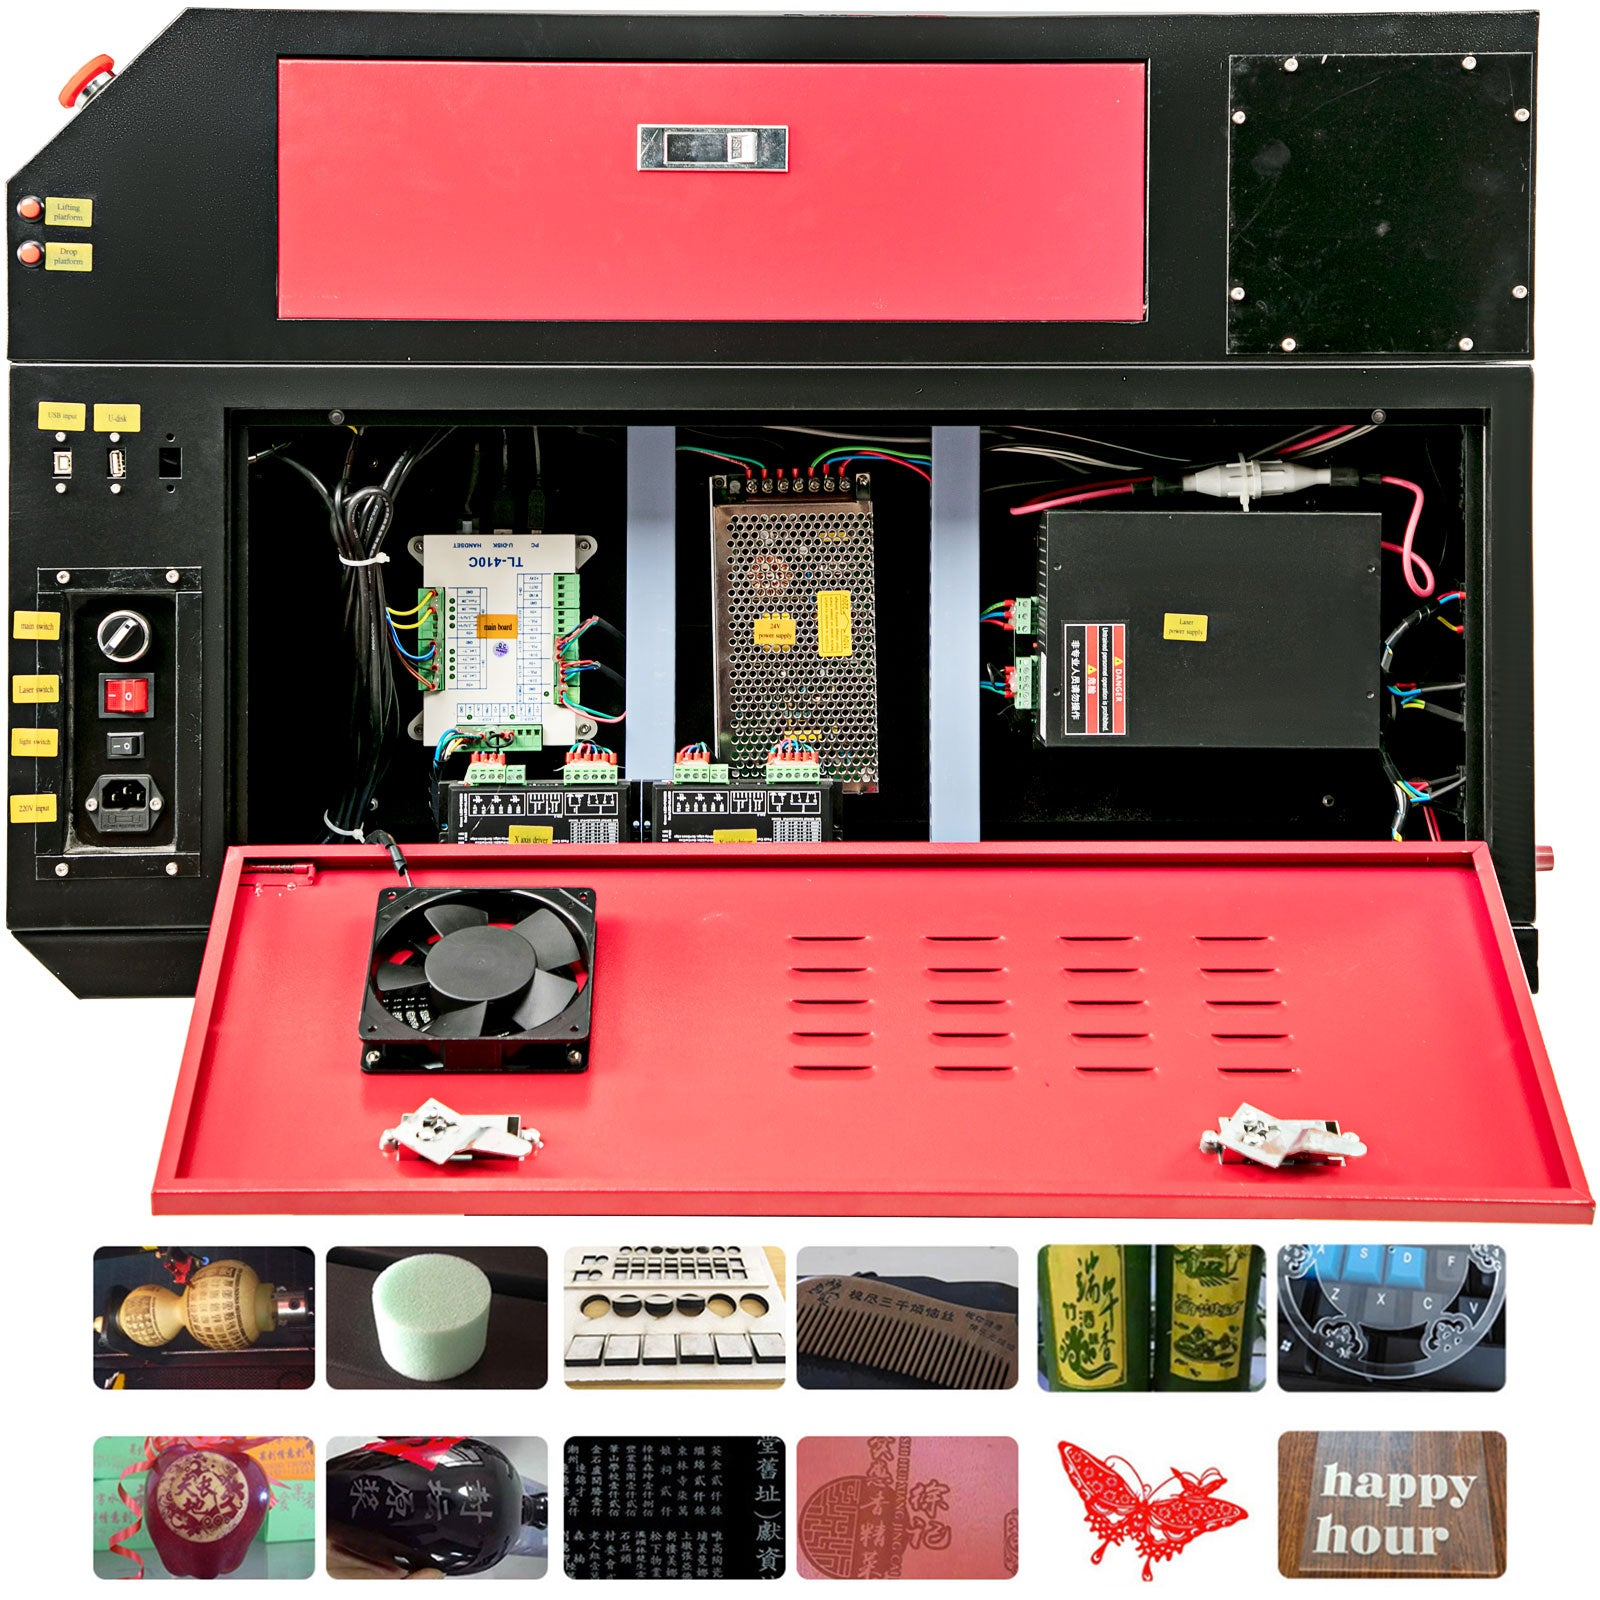 60w Co2 Laser Engraving Engraver Cutting Machine Dsp Control Usb Cutter Printer